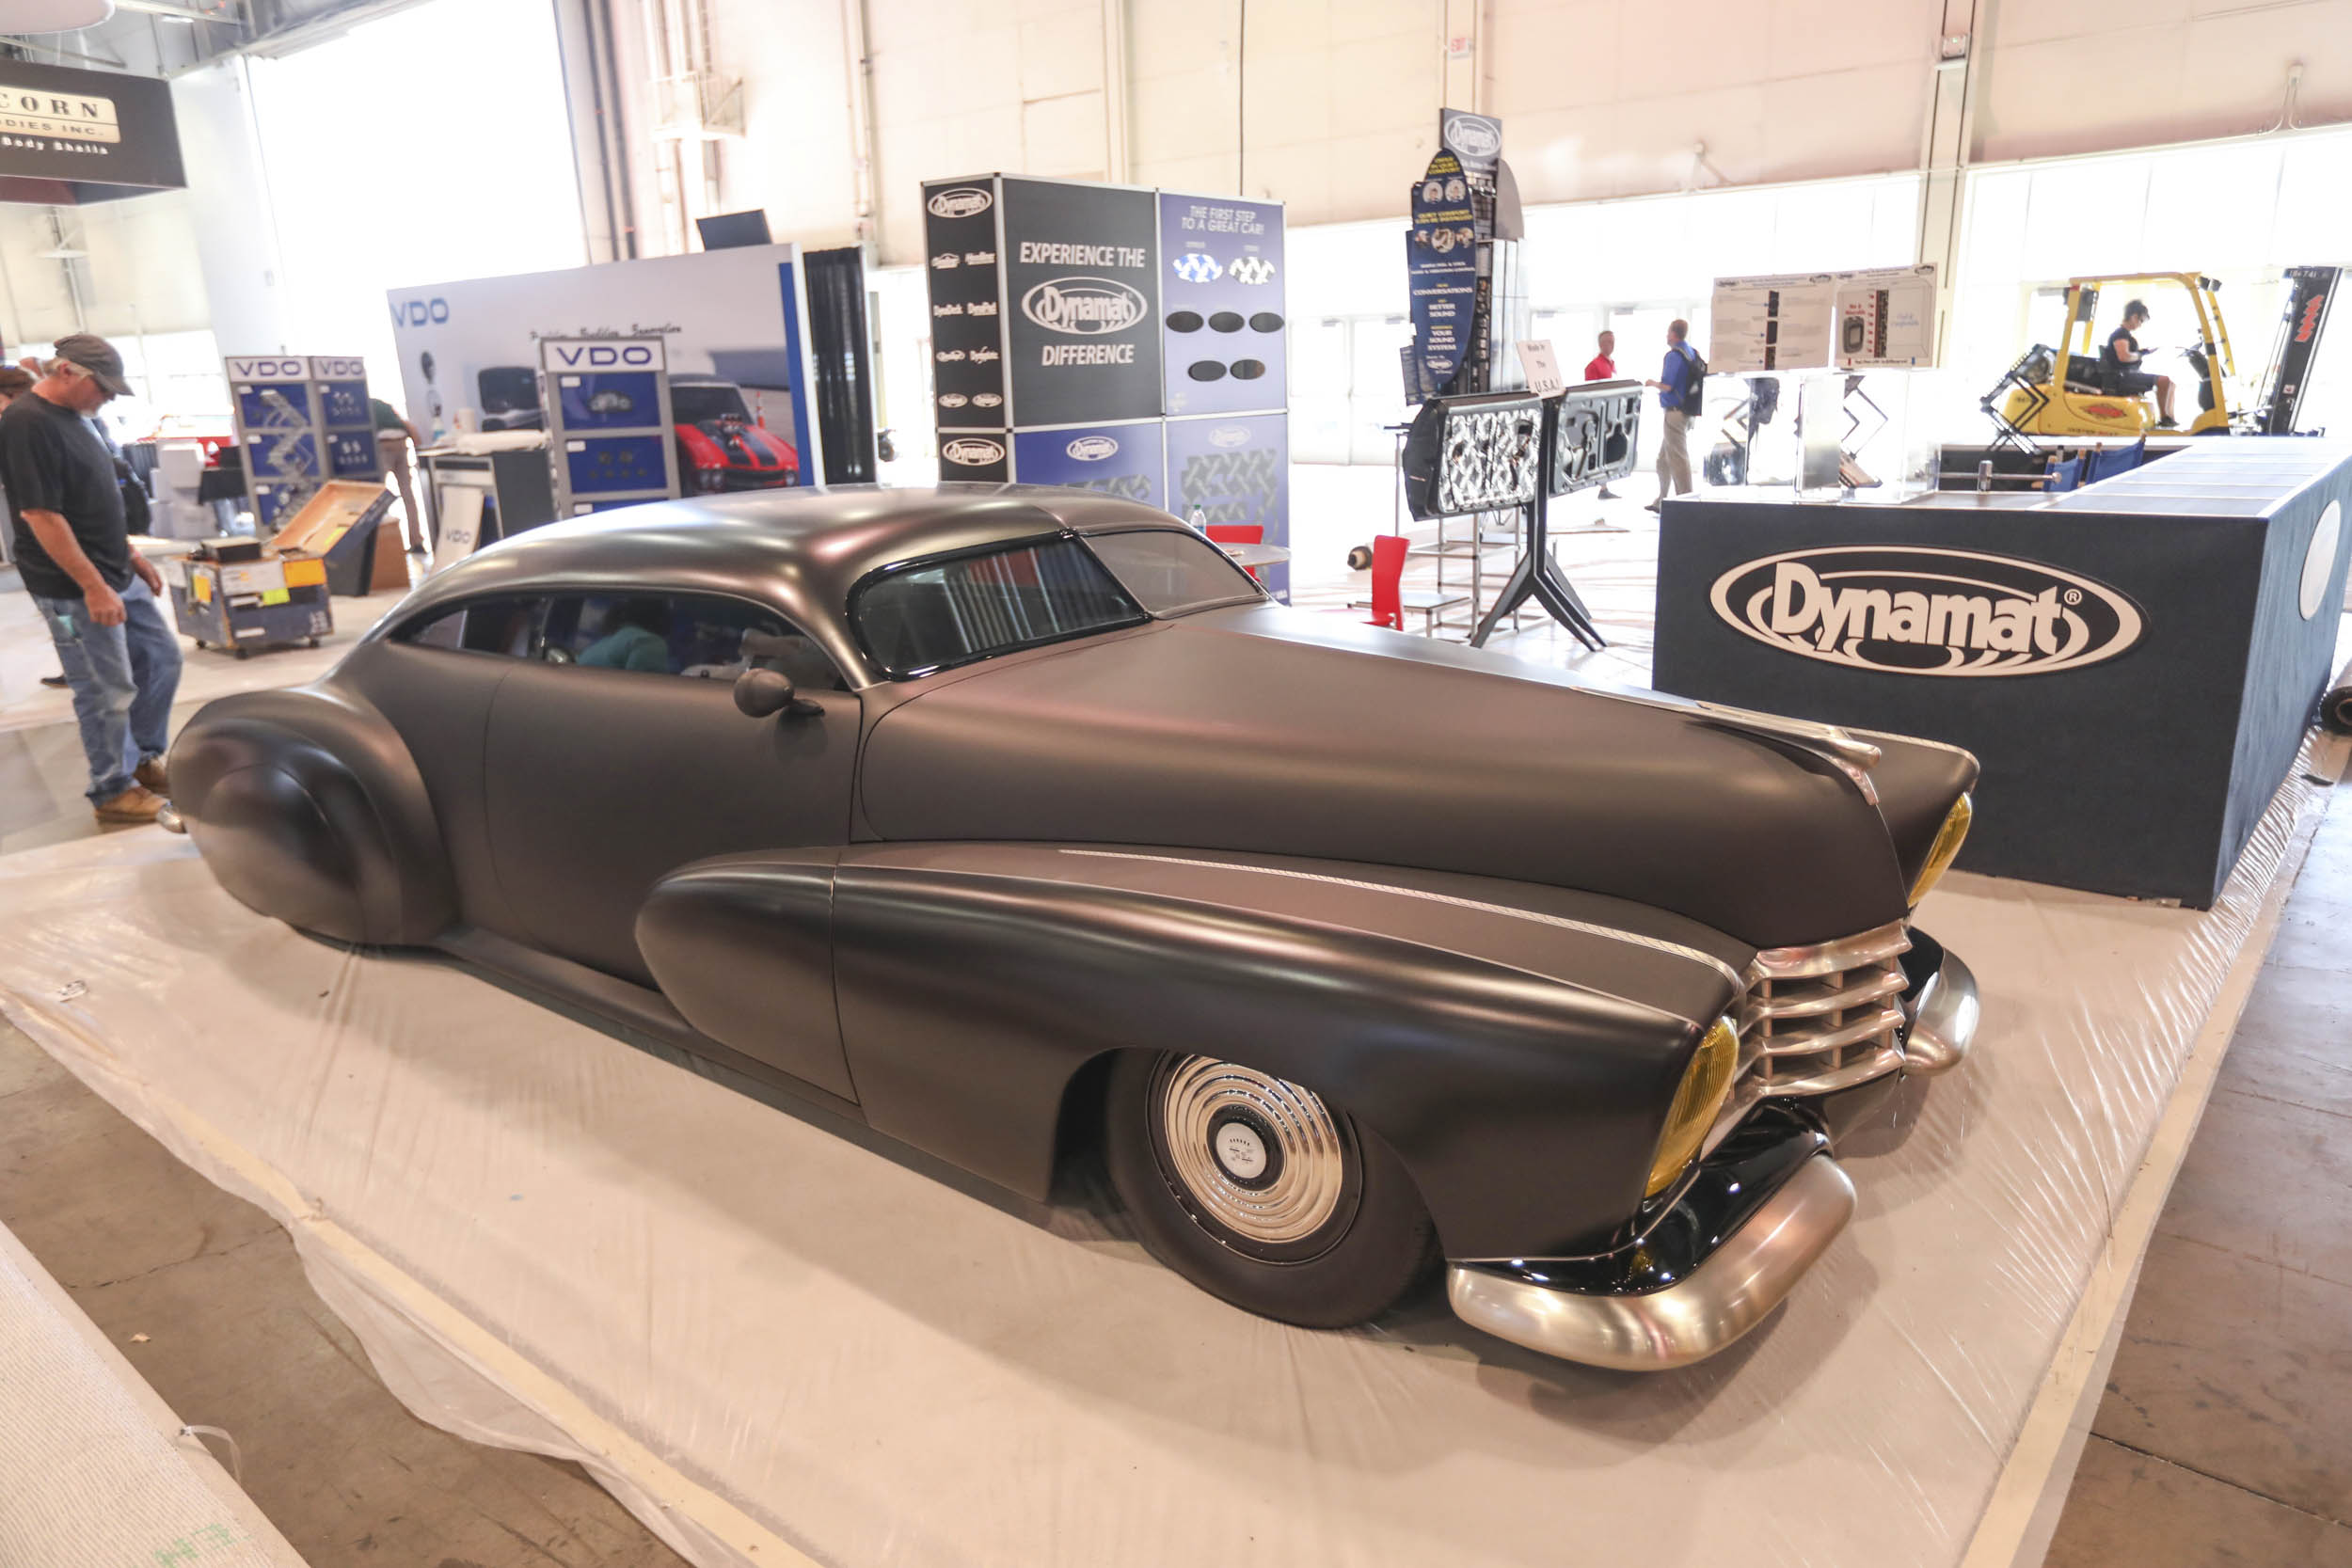 This black on black Cadillac lead sled in the Dynamat booth looks like it belongs in Batman the Animated Series